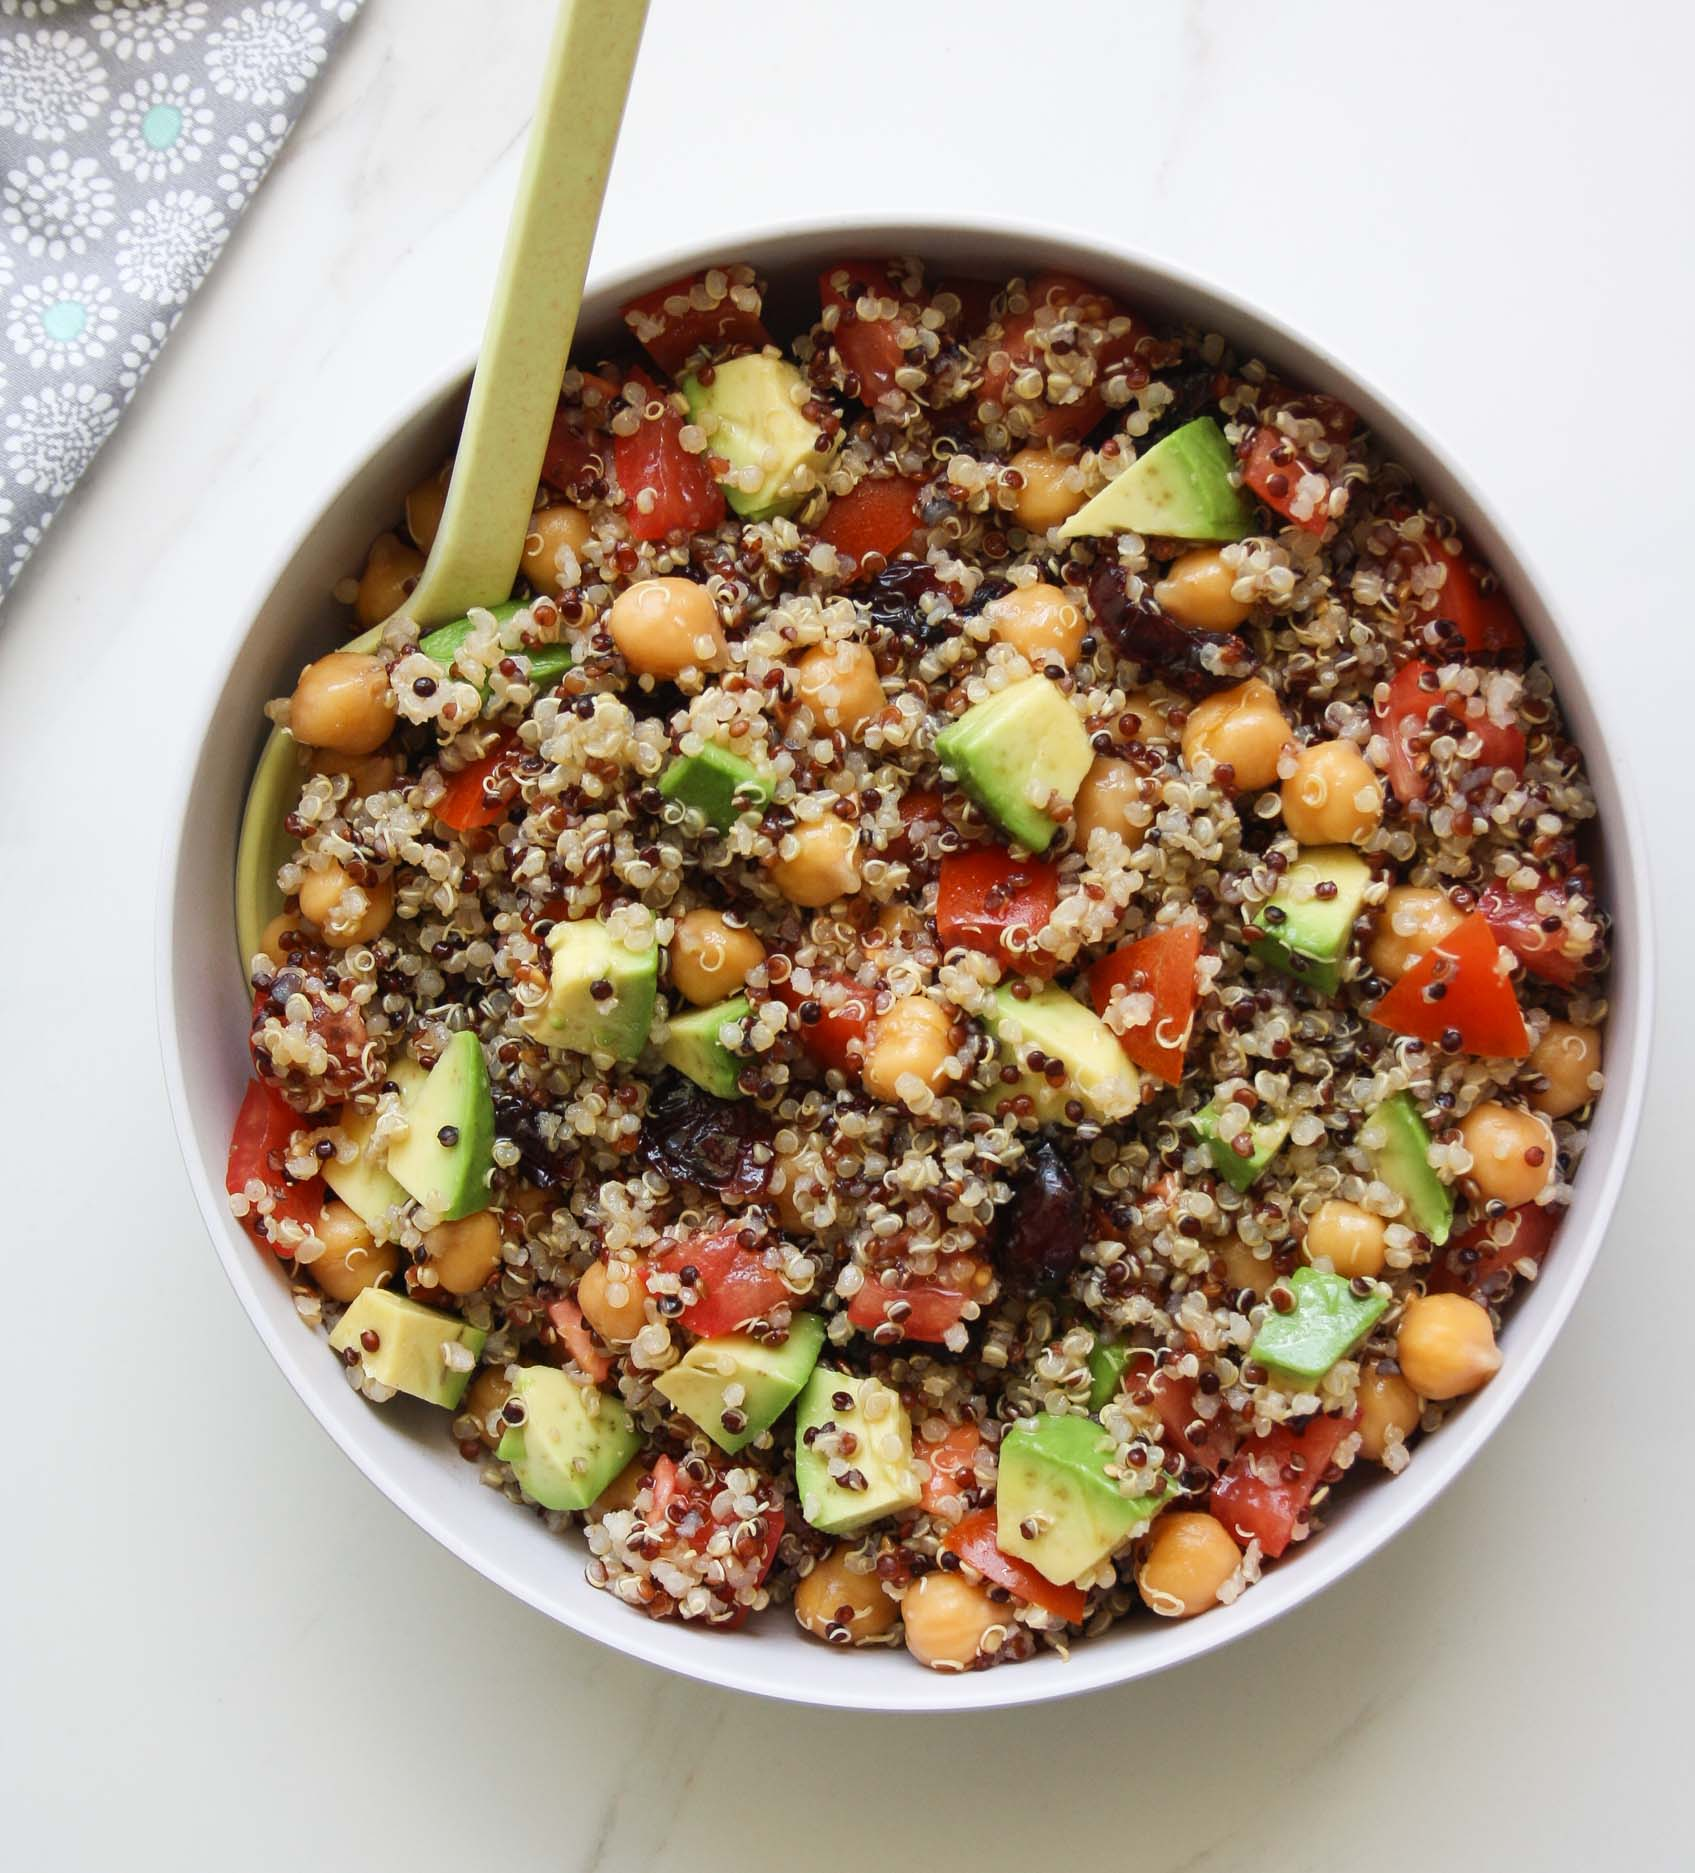 quinoa salad with avocado, tomatoes, chickpeas and cranberries with a spoon